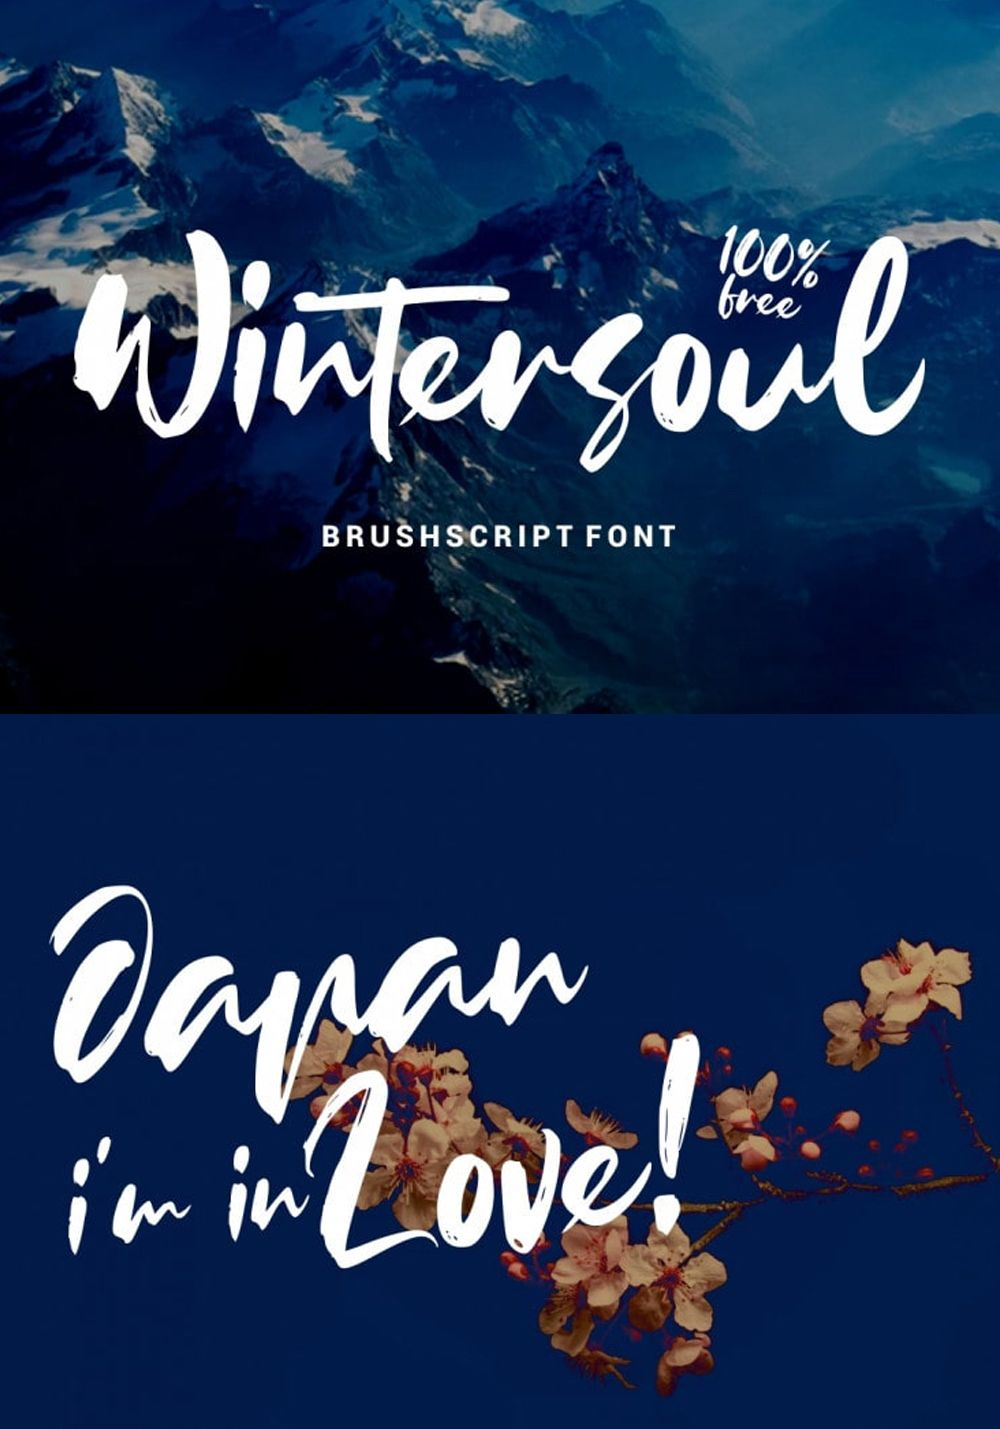 Wintersoul Handbrush Script Font Free For Commercial Use This